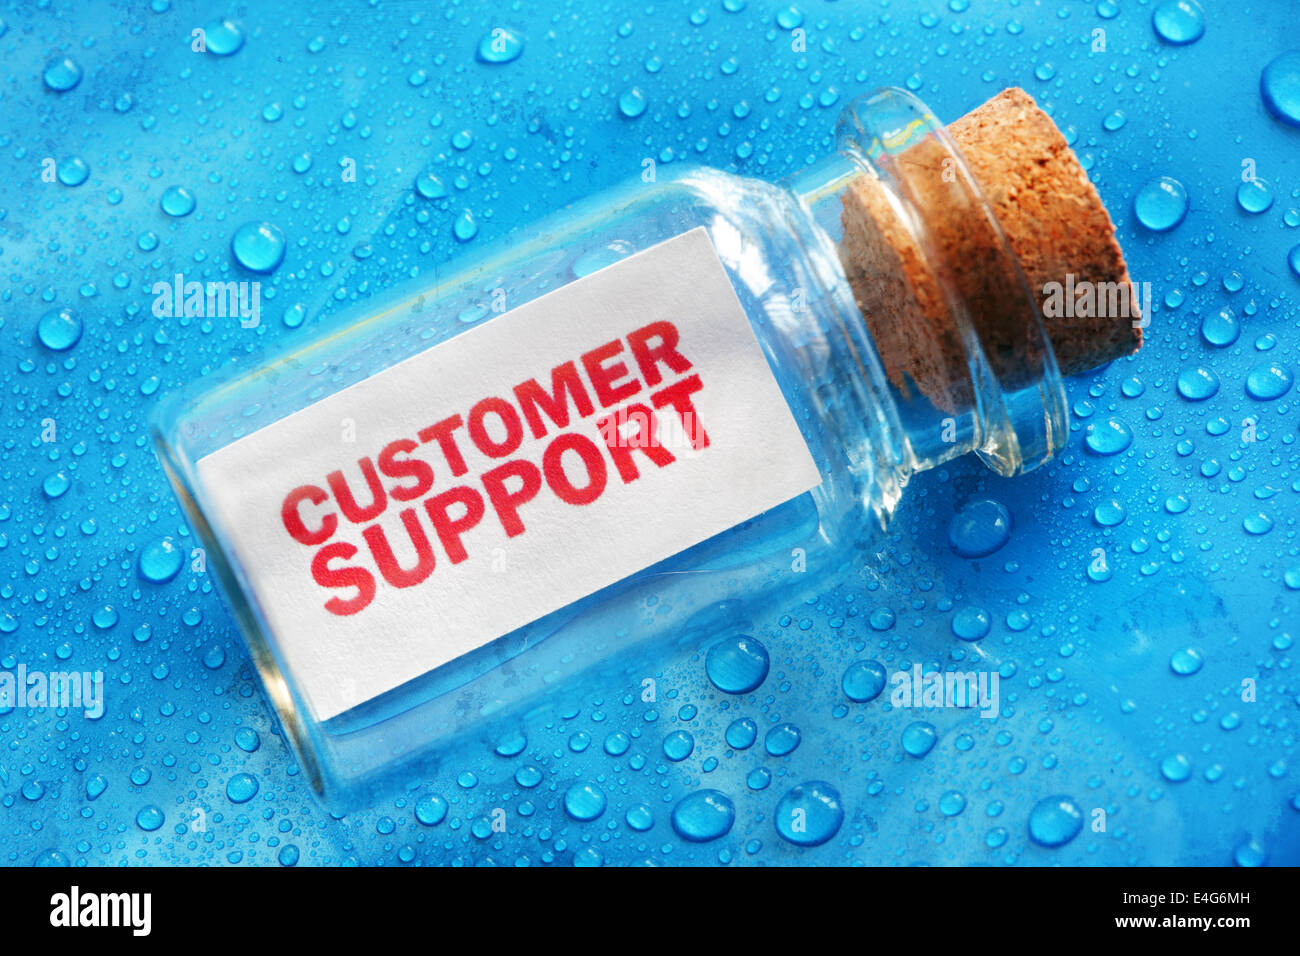 Support client Photo Stock